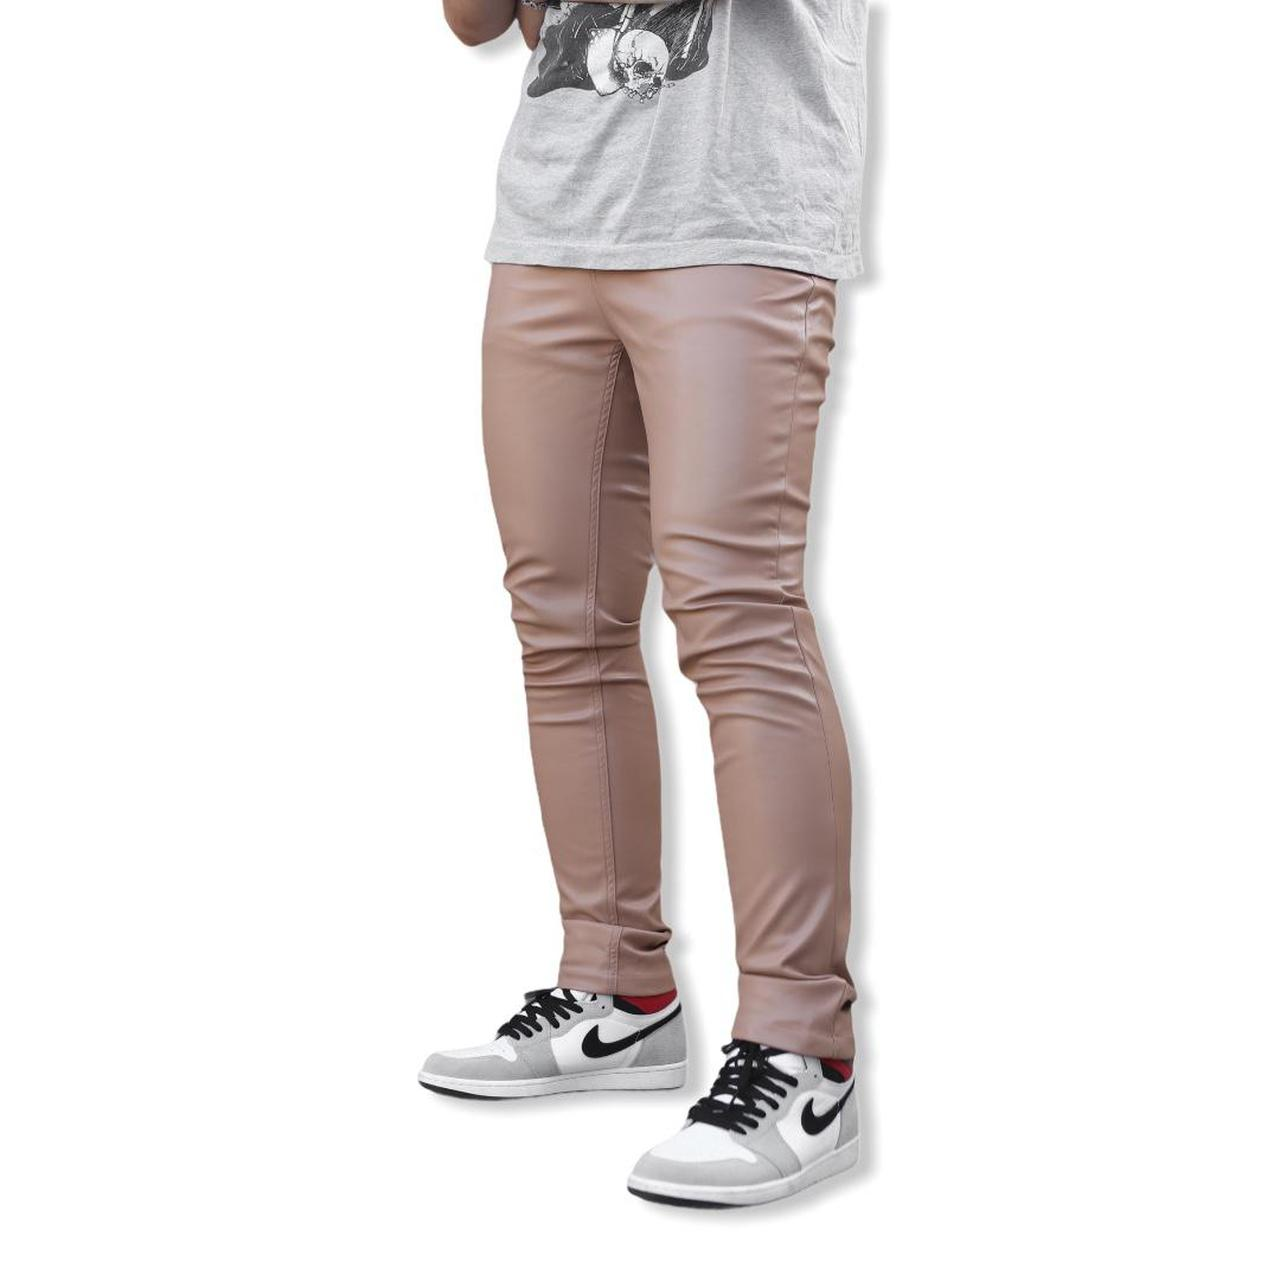 Product Image 1 - Leather Pants Beige • Skinny fit,